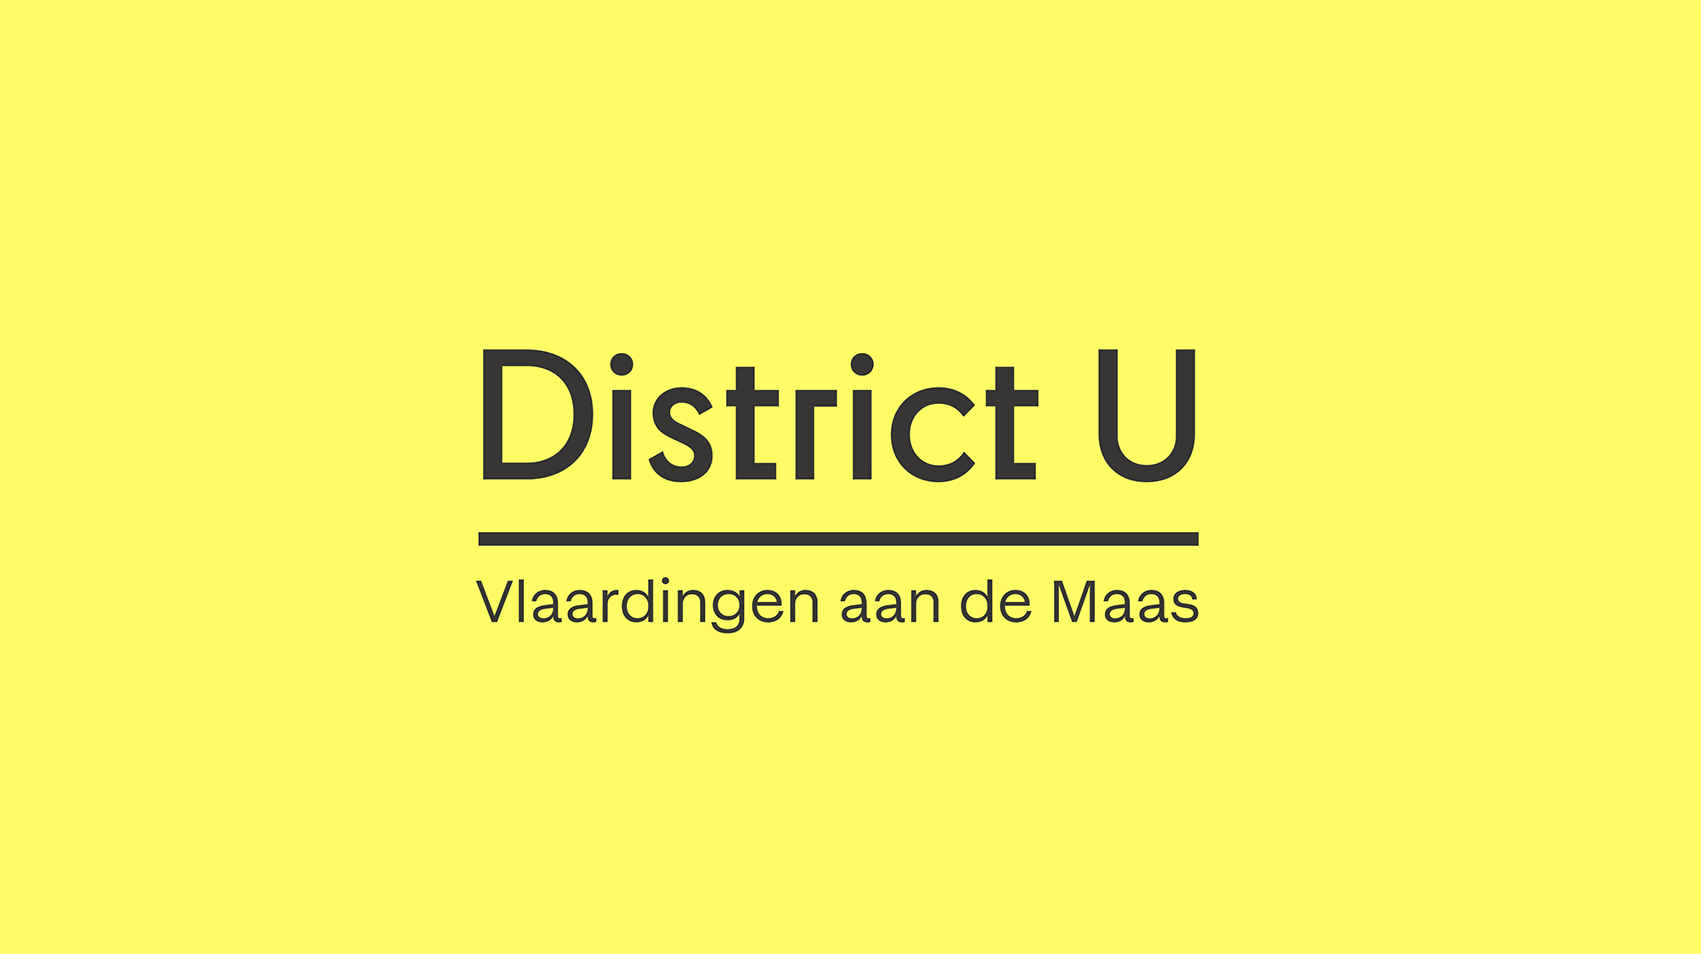 District-U Vlaardingen